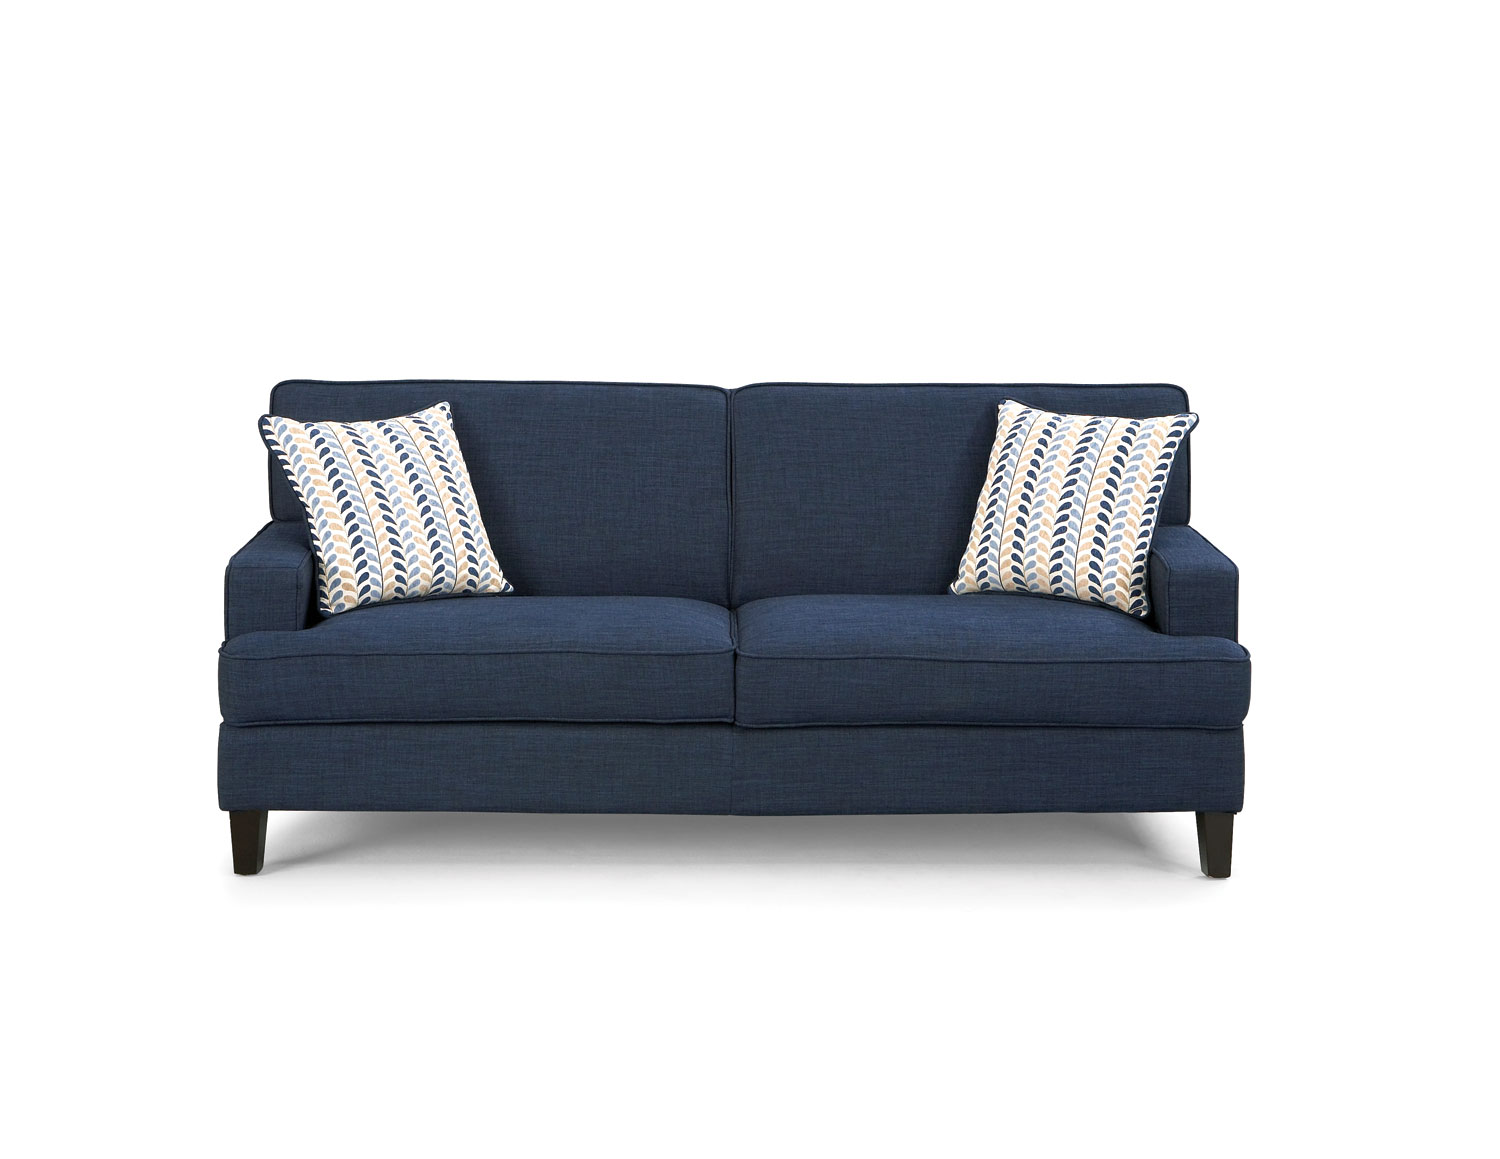 coaster furniture finley blue sofa the classy home rh theclassyhome com coaster furniture sofa bed coaster furniture couch